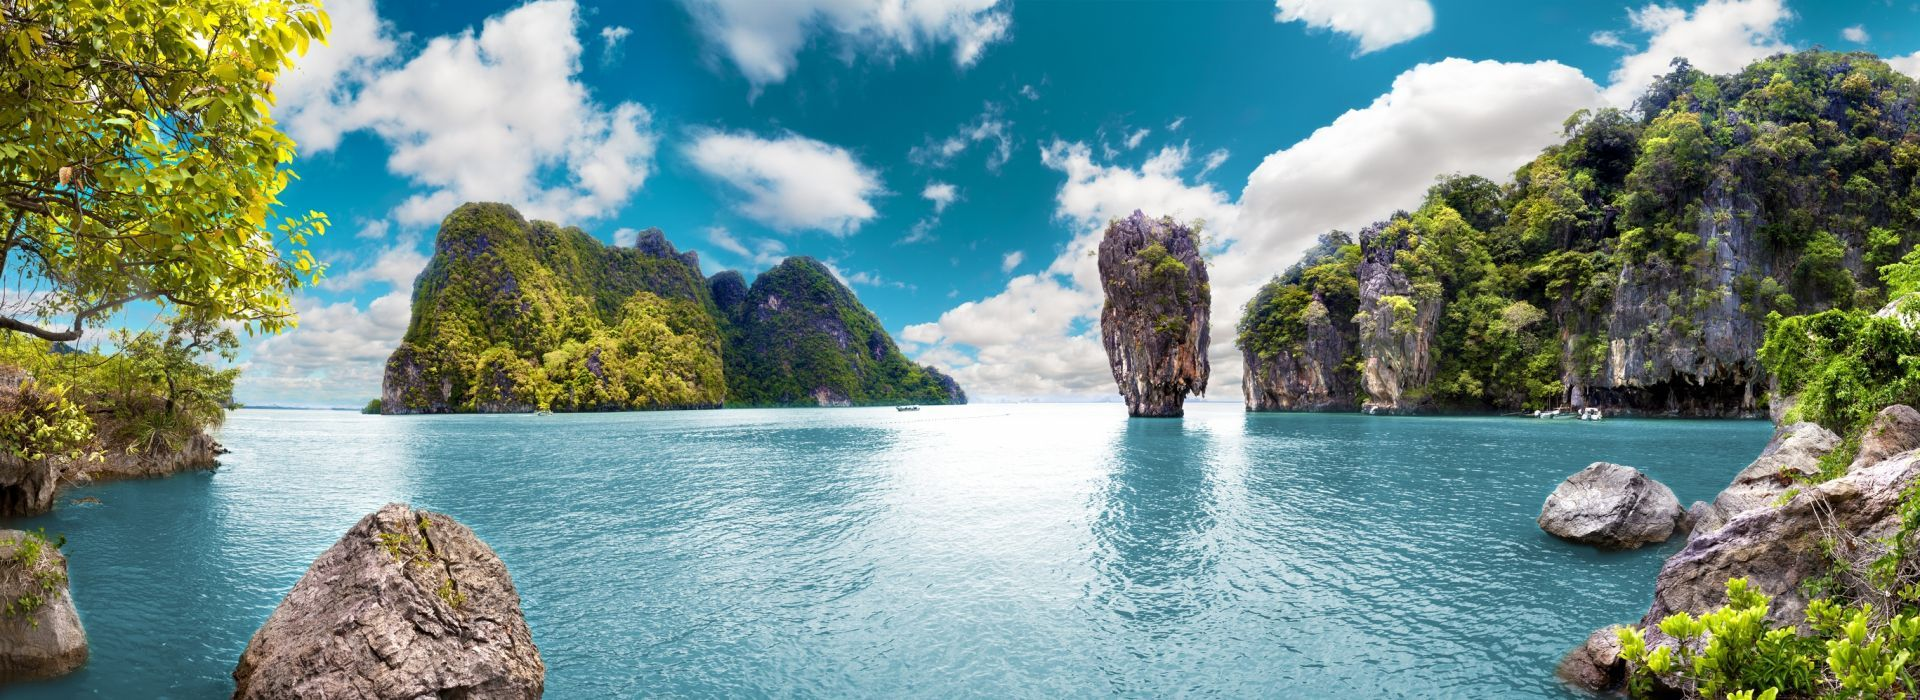 Snorkeling Tours in Thailand